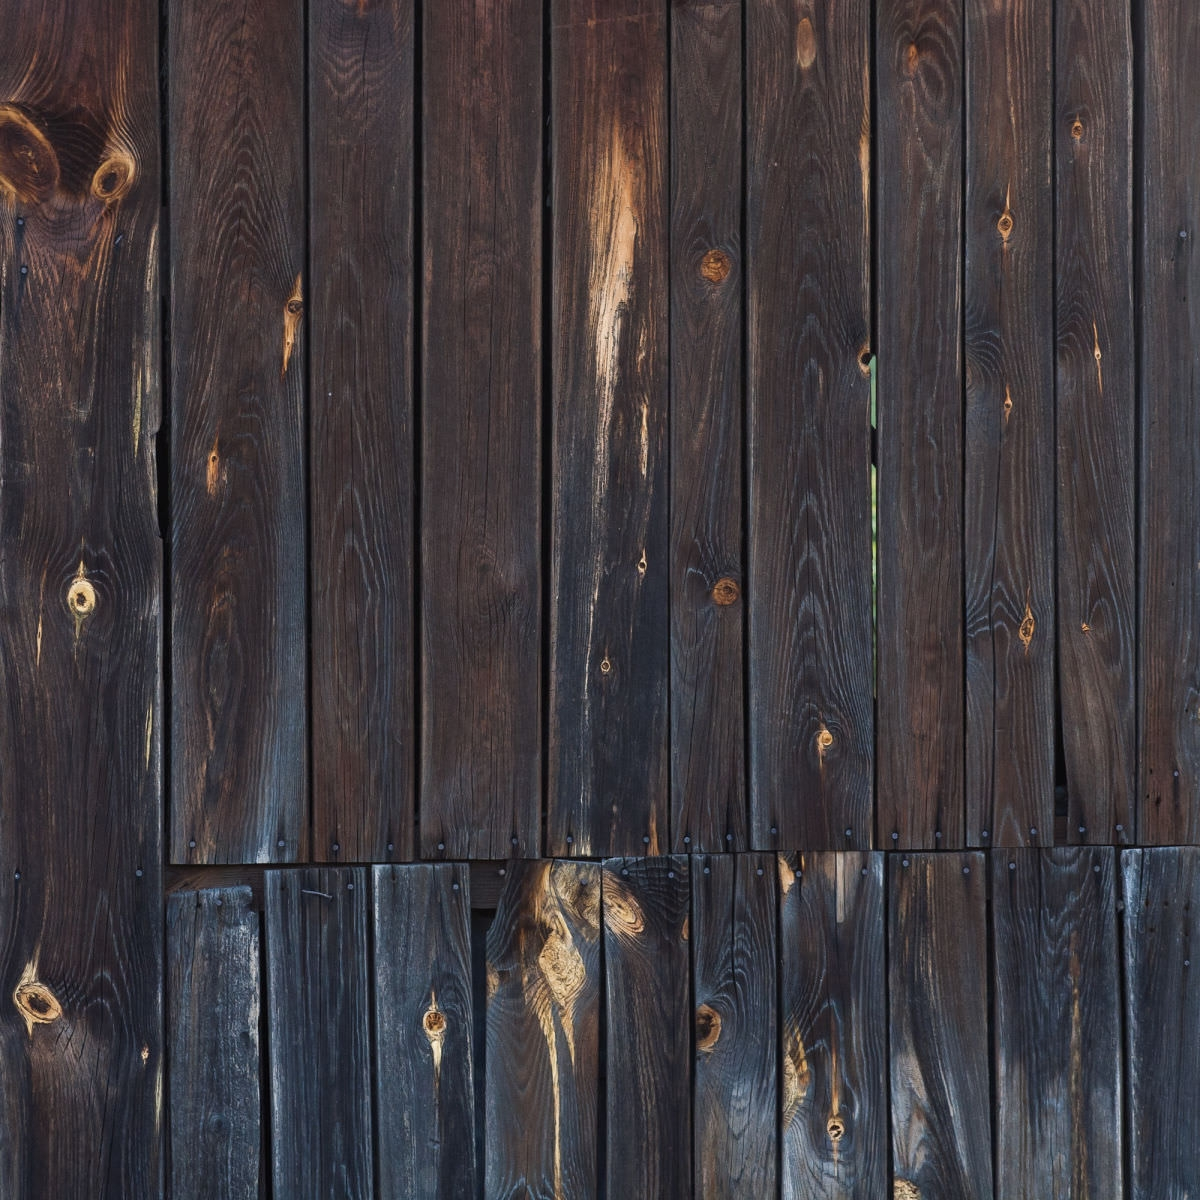 Dark Wooden Planks Texture Background